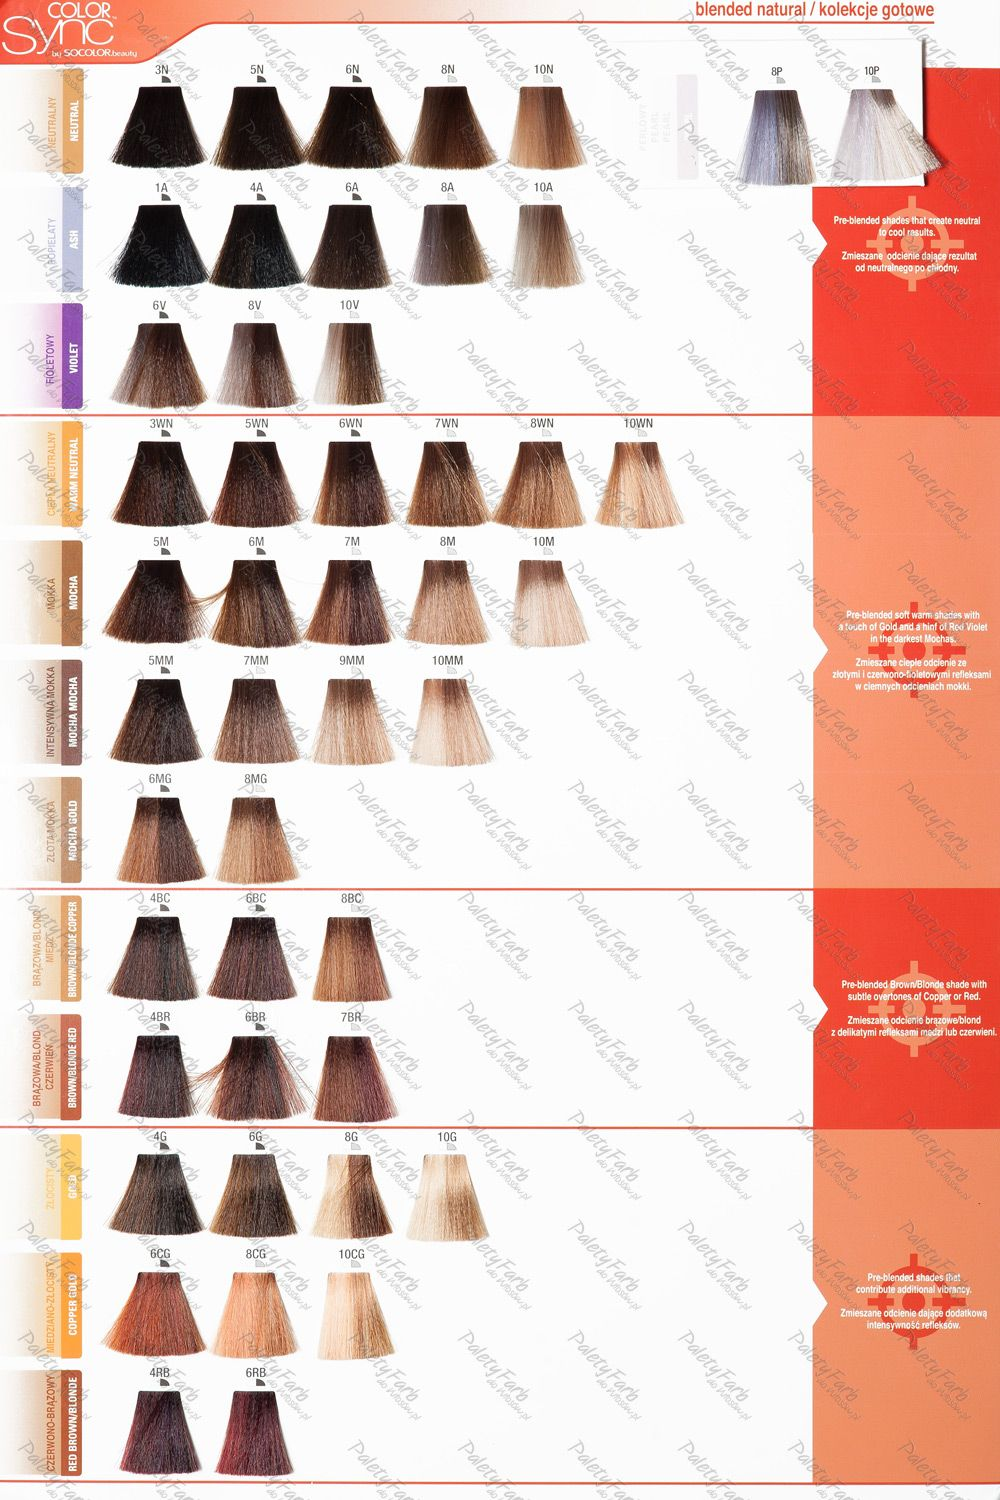 Paleta Matrix Color Sync Paleta Kolorow Farb Do Wlosow Matrix Hair Color Hair Color Formulas Matrix Color Chart